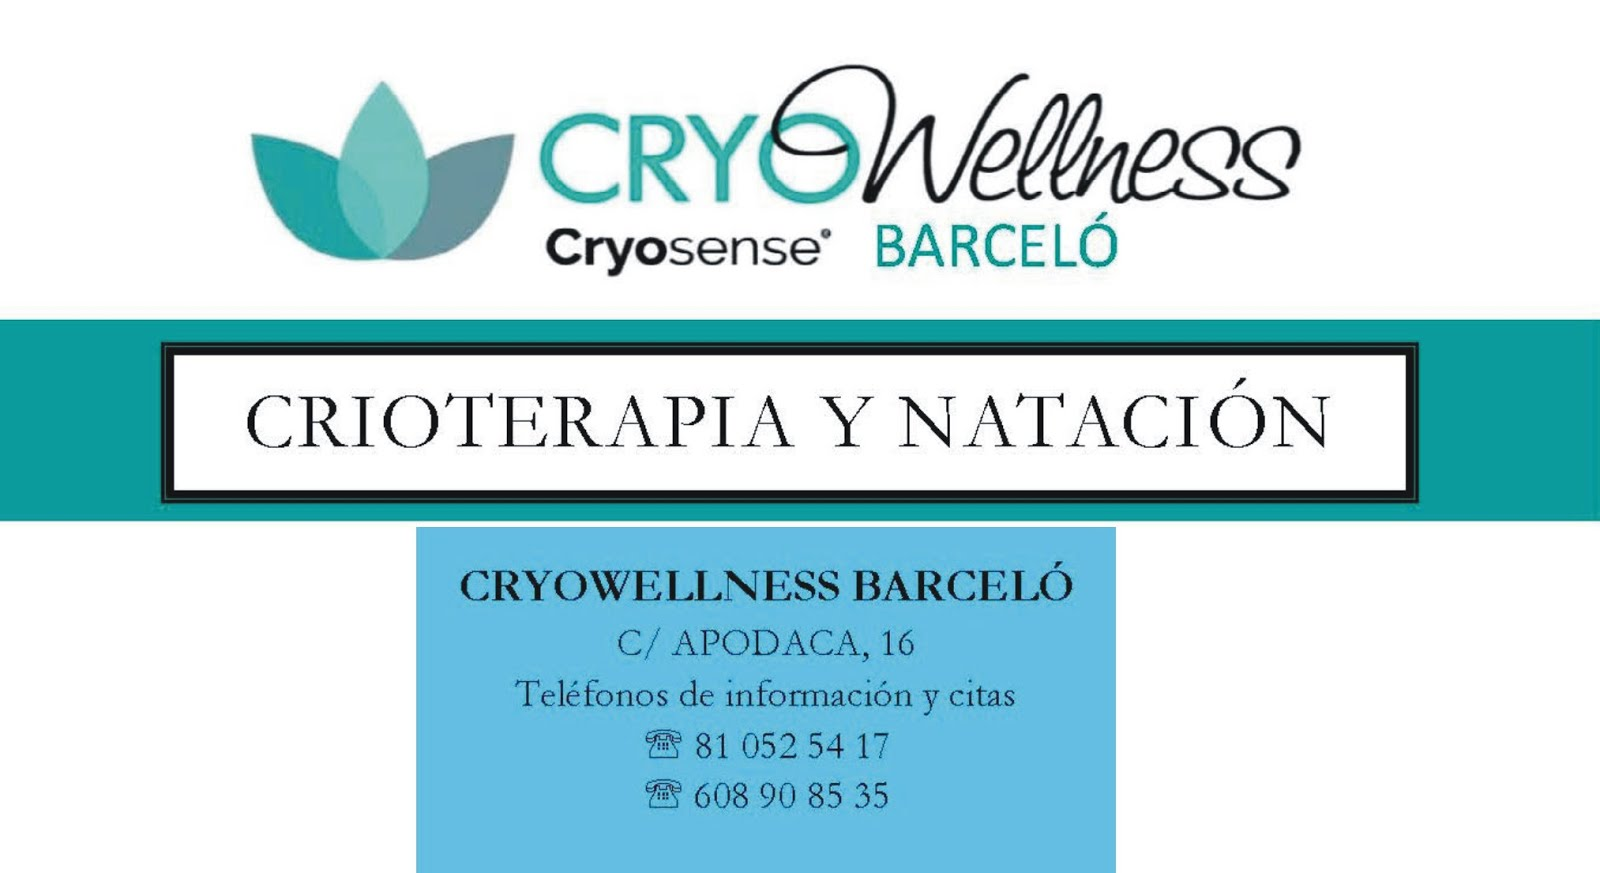 CRYOWELLNESS BARCELÓ